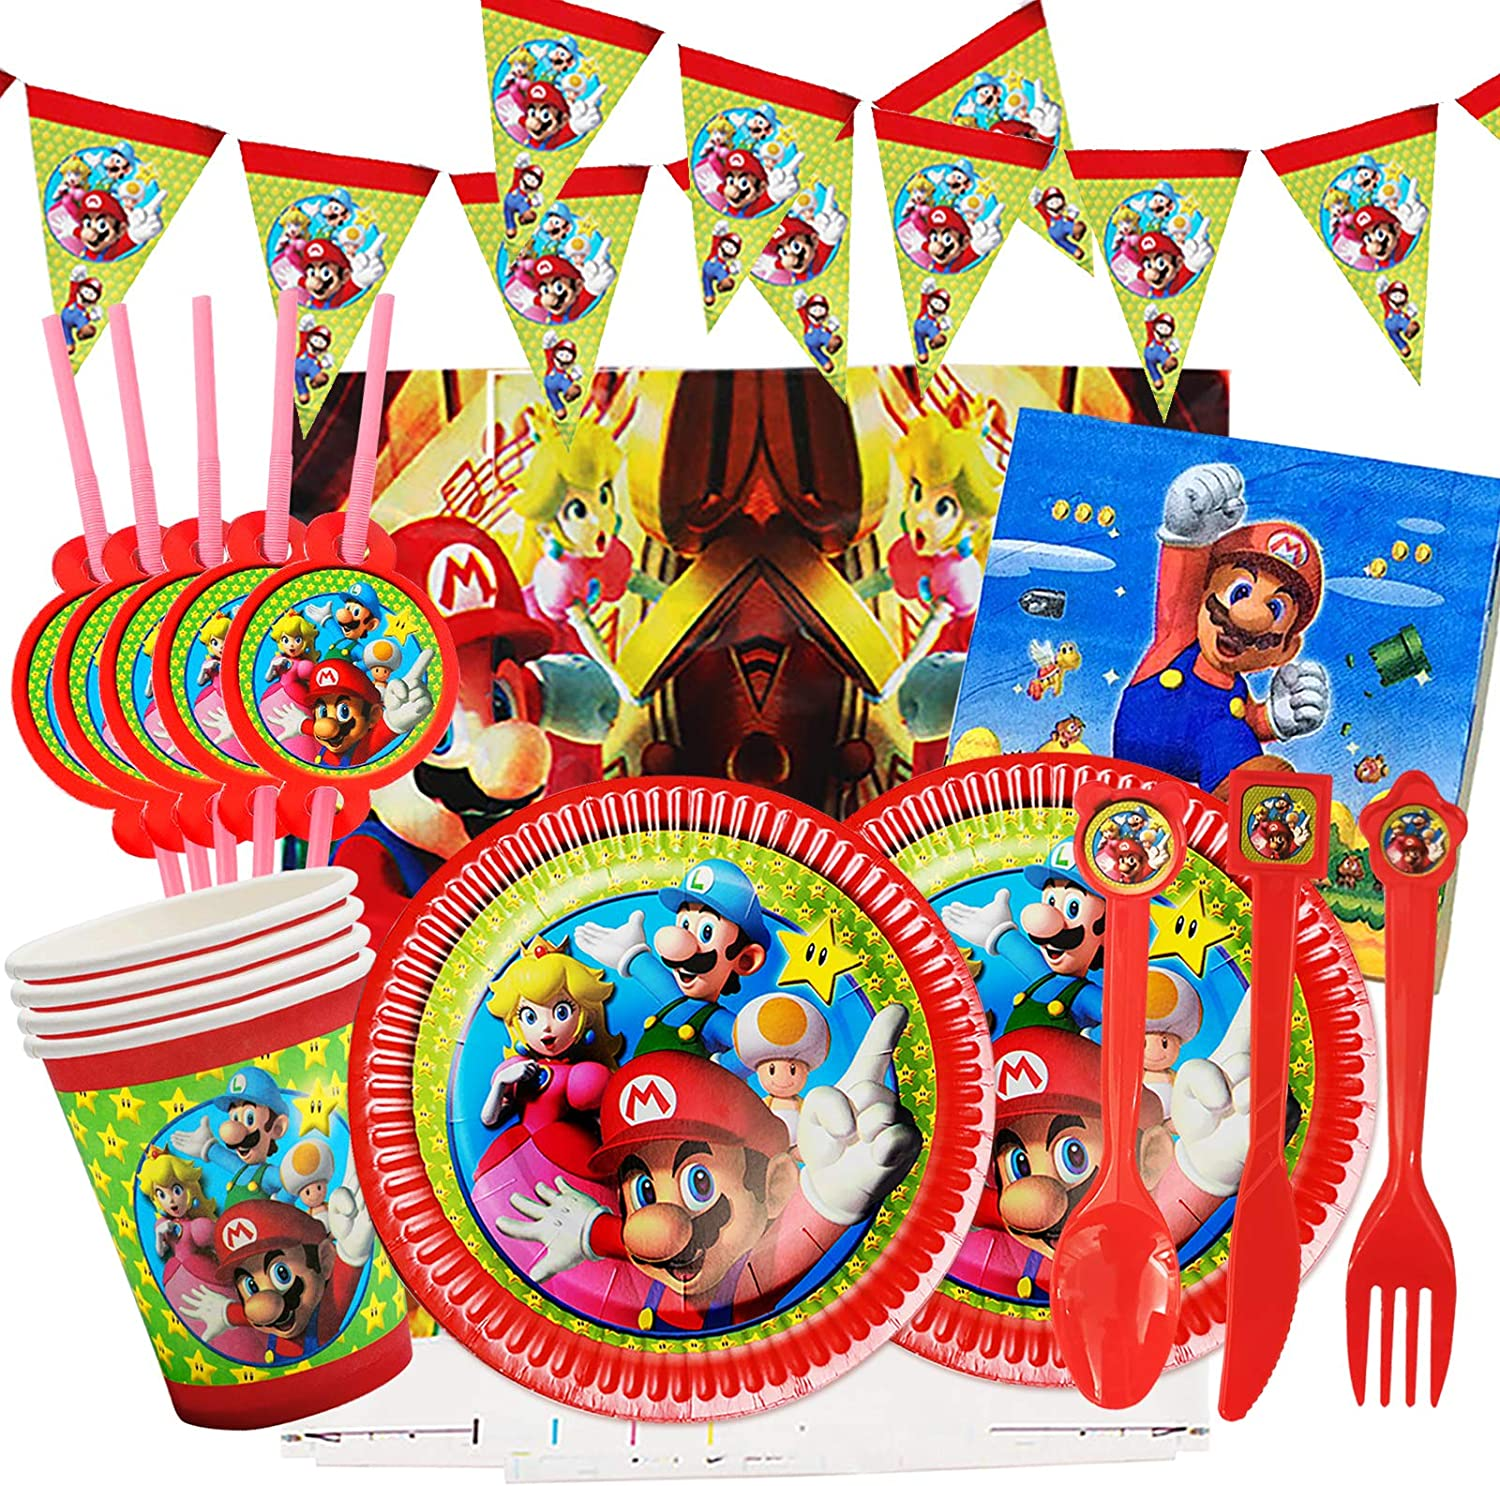 Gxhong Super Mario Birthday Party Supplies Decorations Disposable Dinnerware Paper Plates and Napkins for Kids Boy and Girl Theme Baby Shower School Party Decor Daily Favor Set Serve 10 Guests